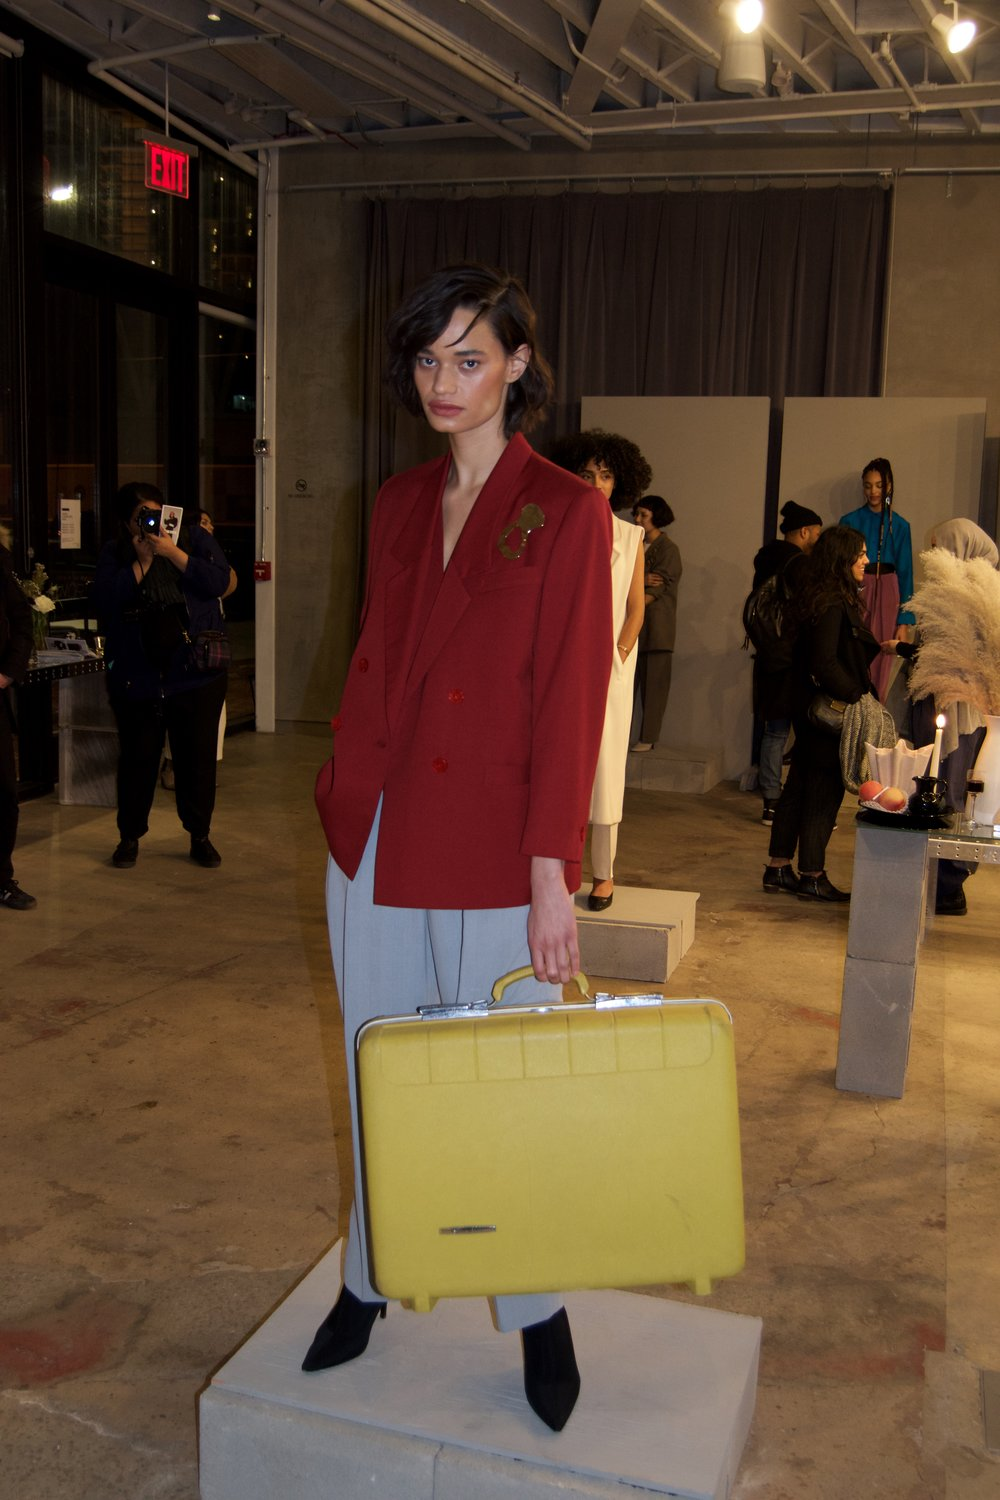 Tierra, holding a cute vintage yellow suitcase modeling all pieces from The Break.